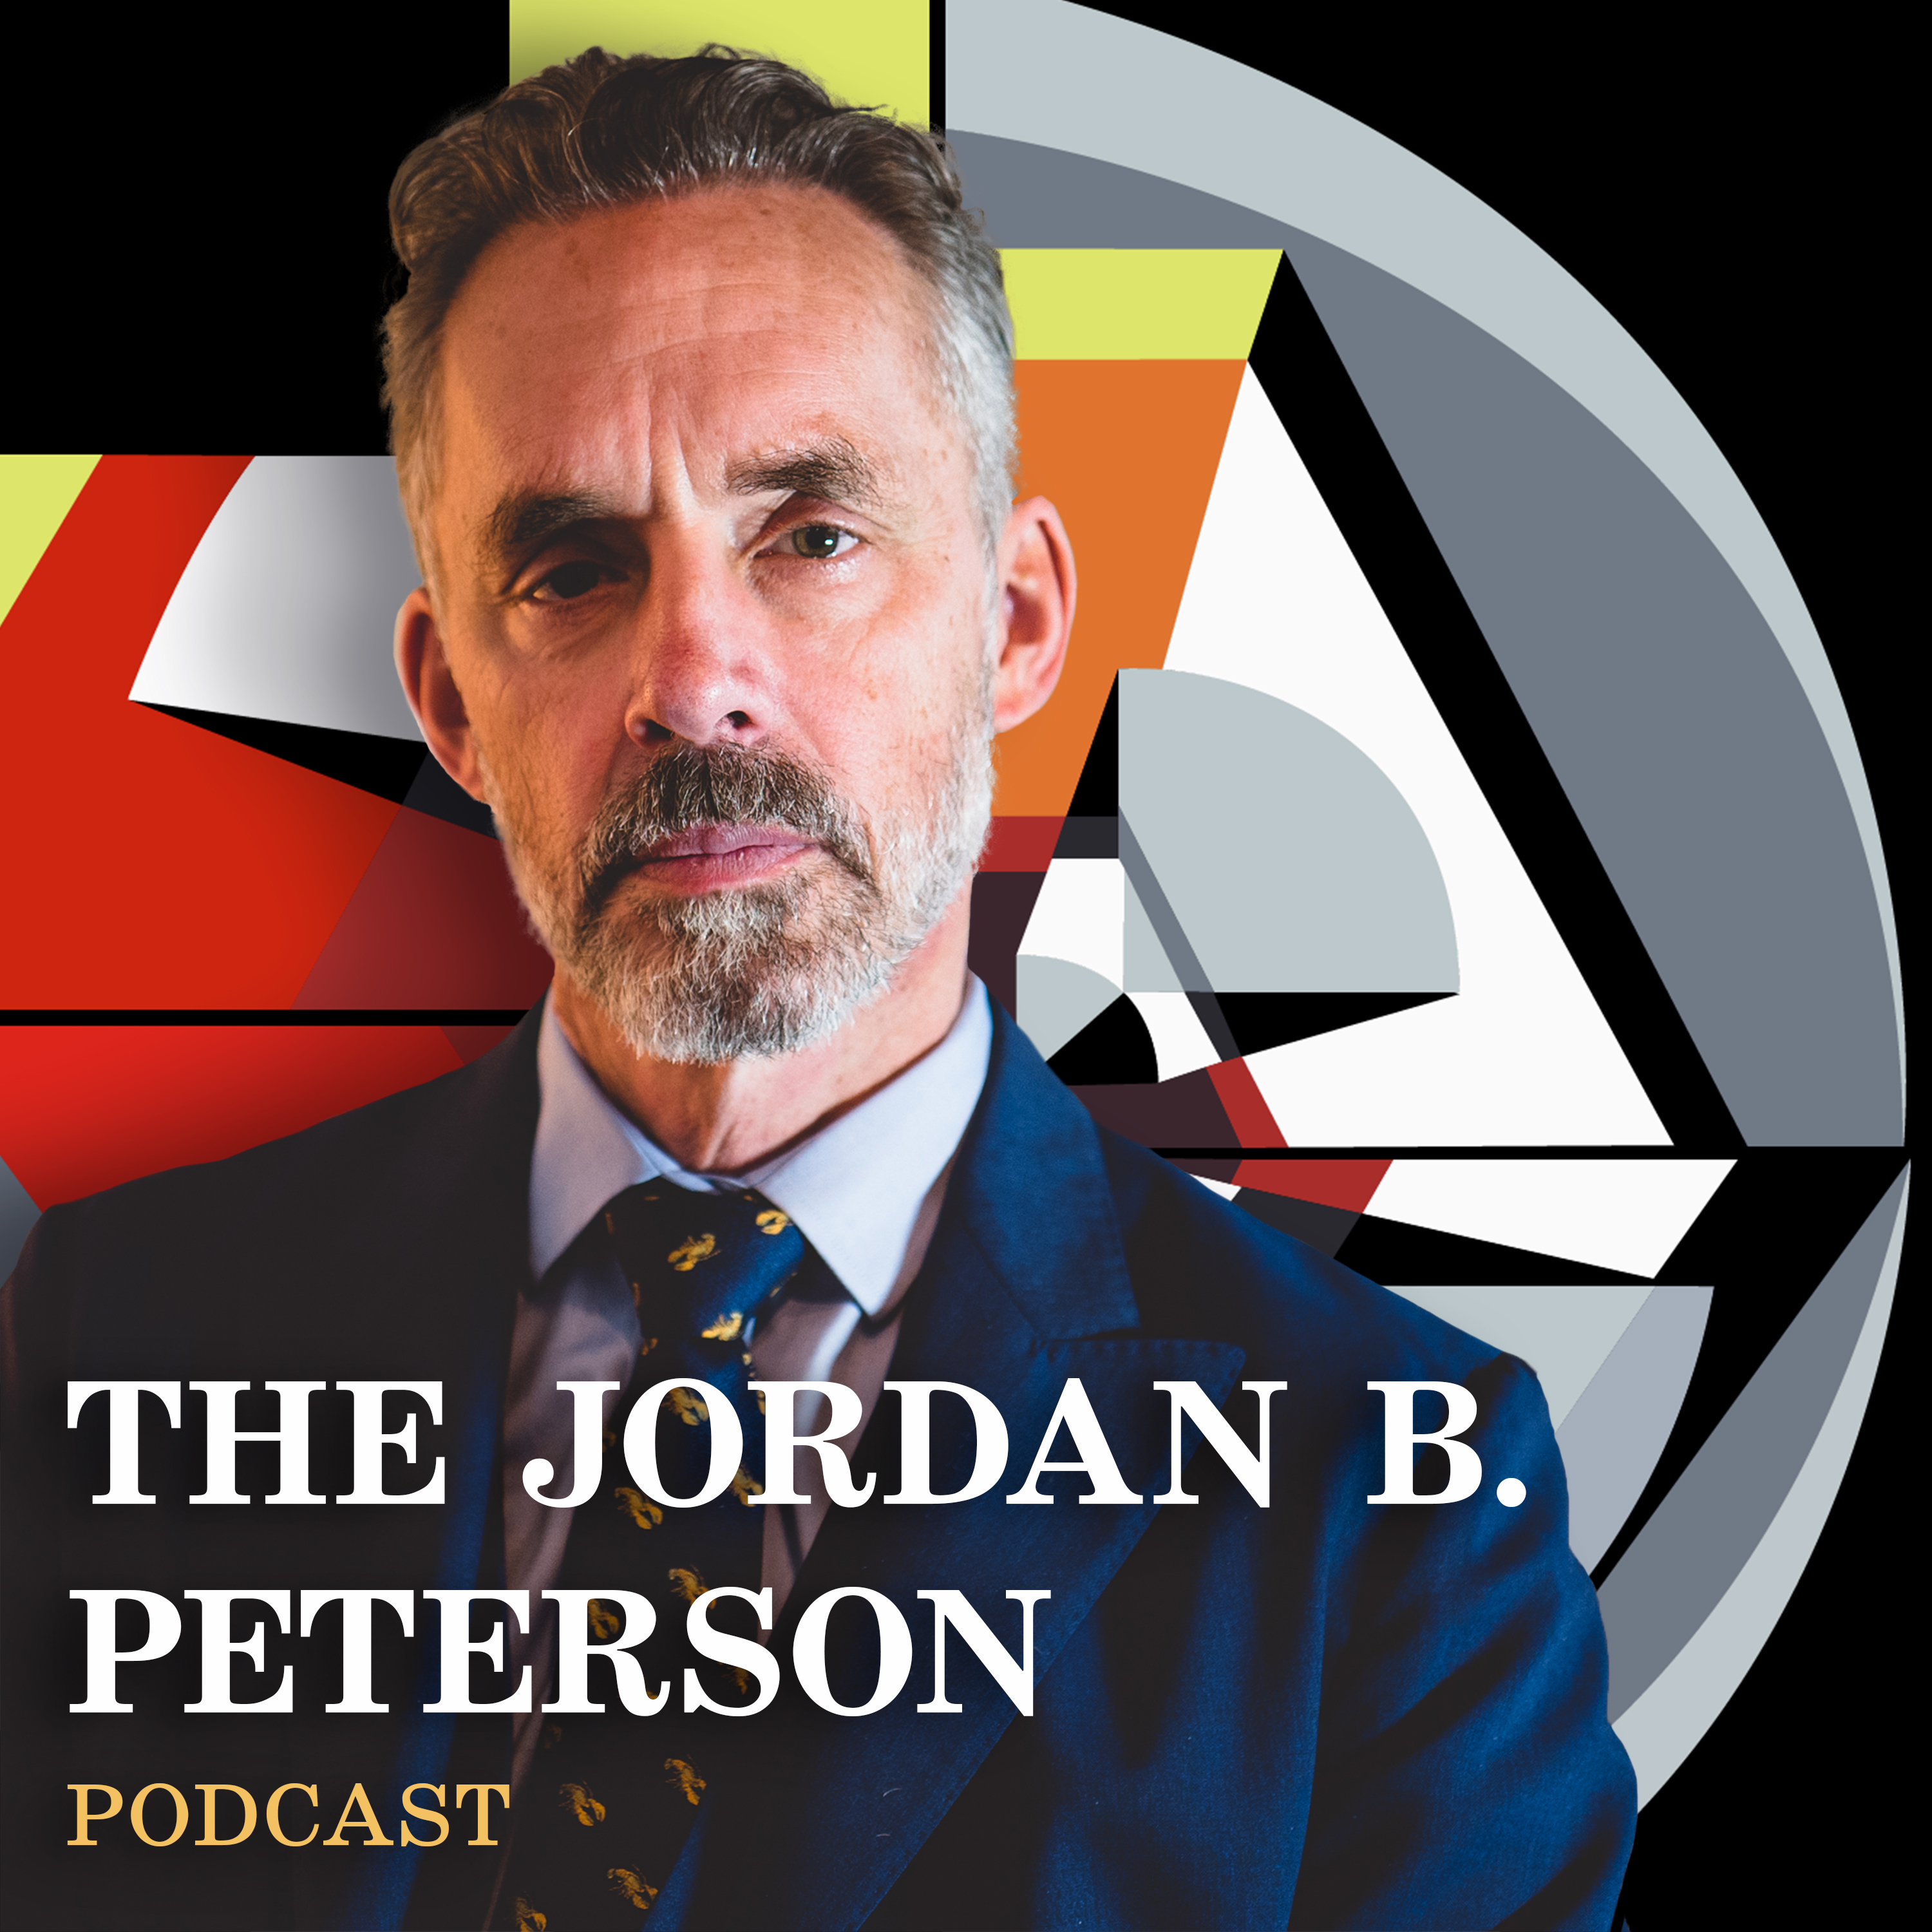 The Jordan B. Peterson Podcast - Why You Should Treat Yourself as if You Have Value